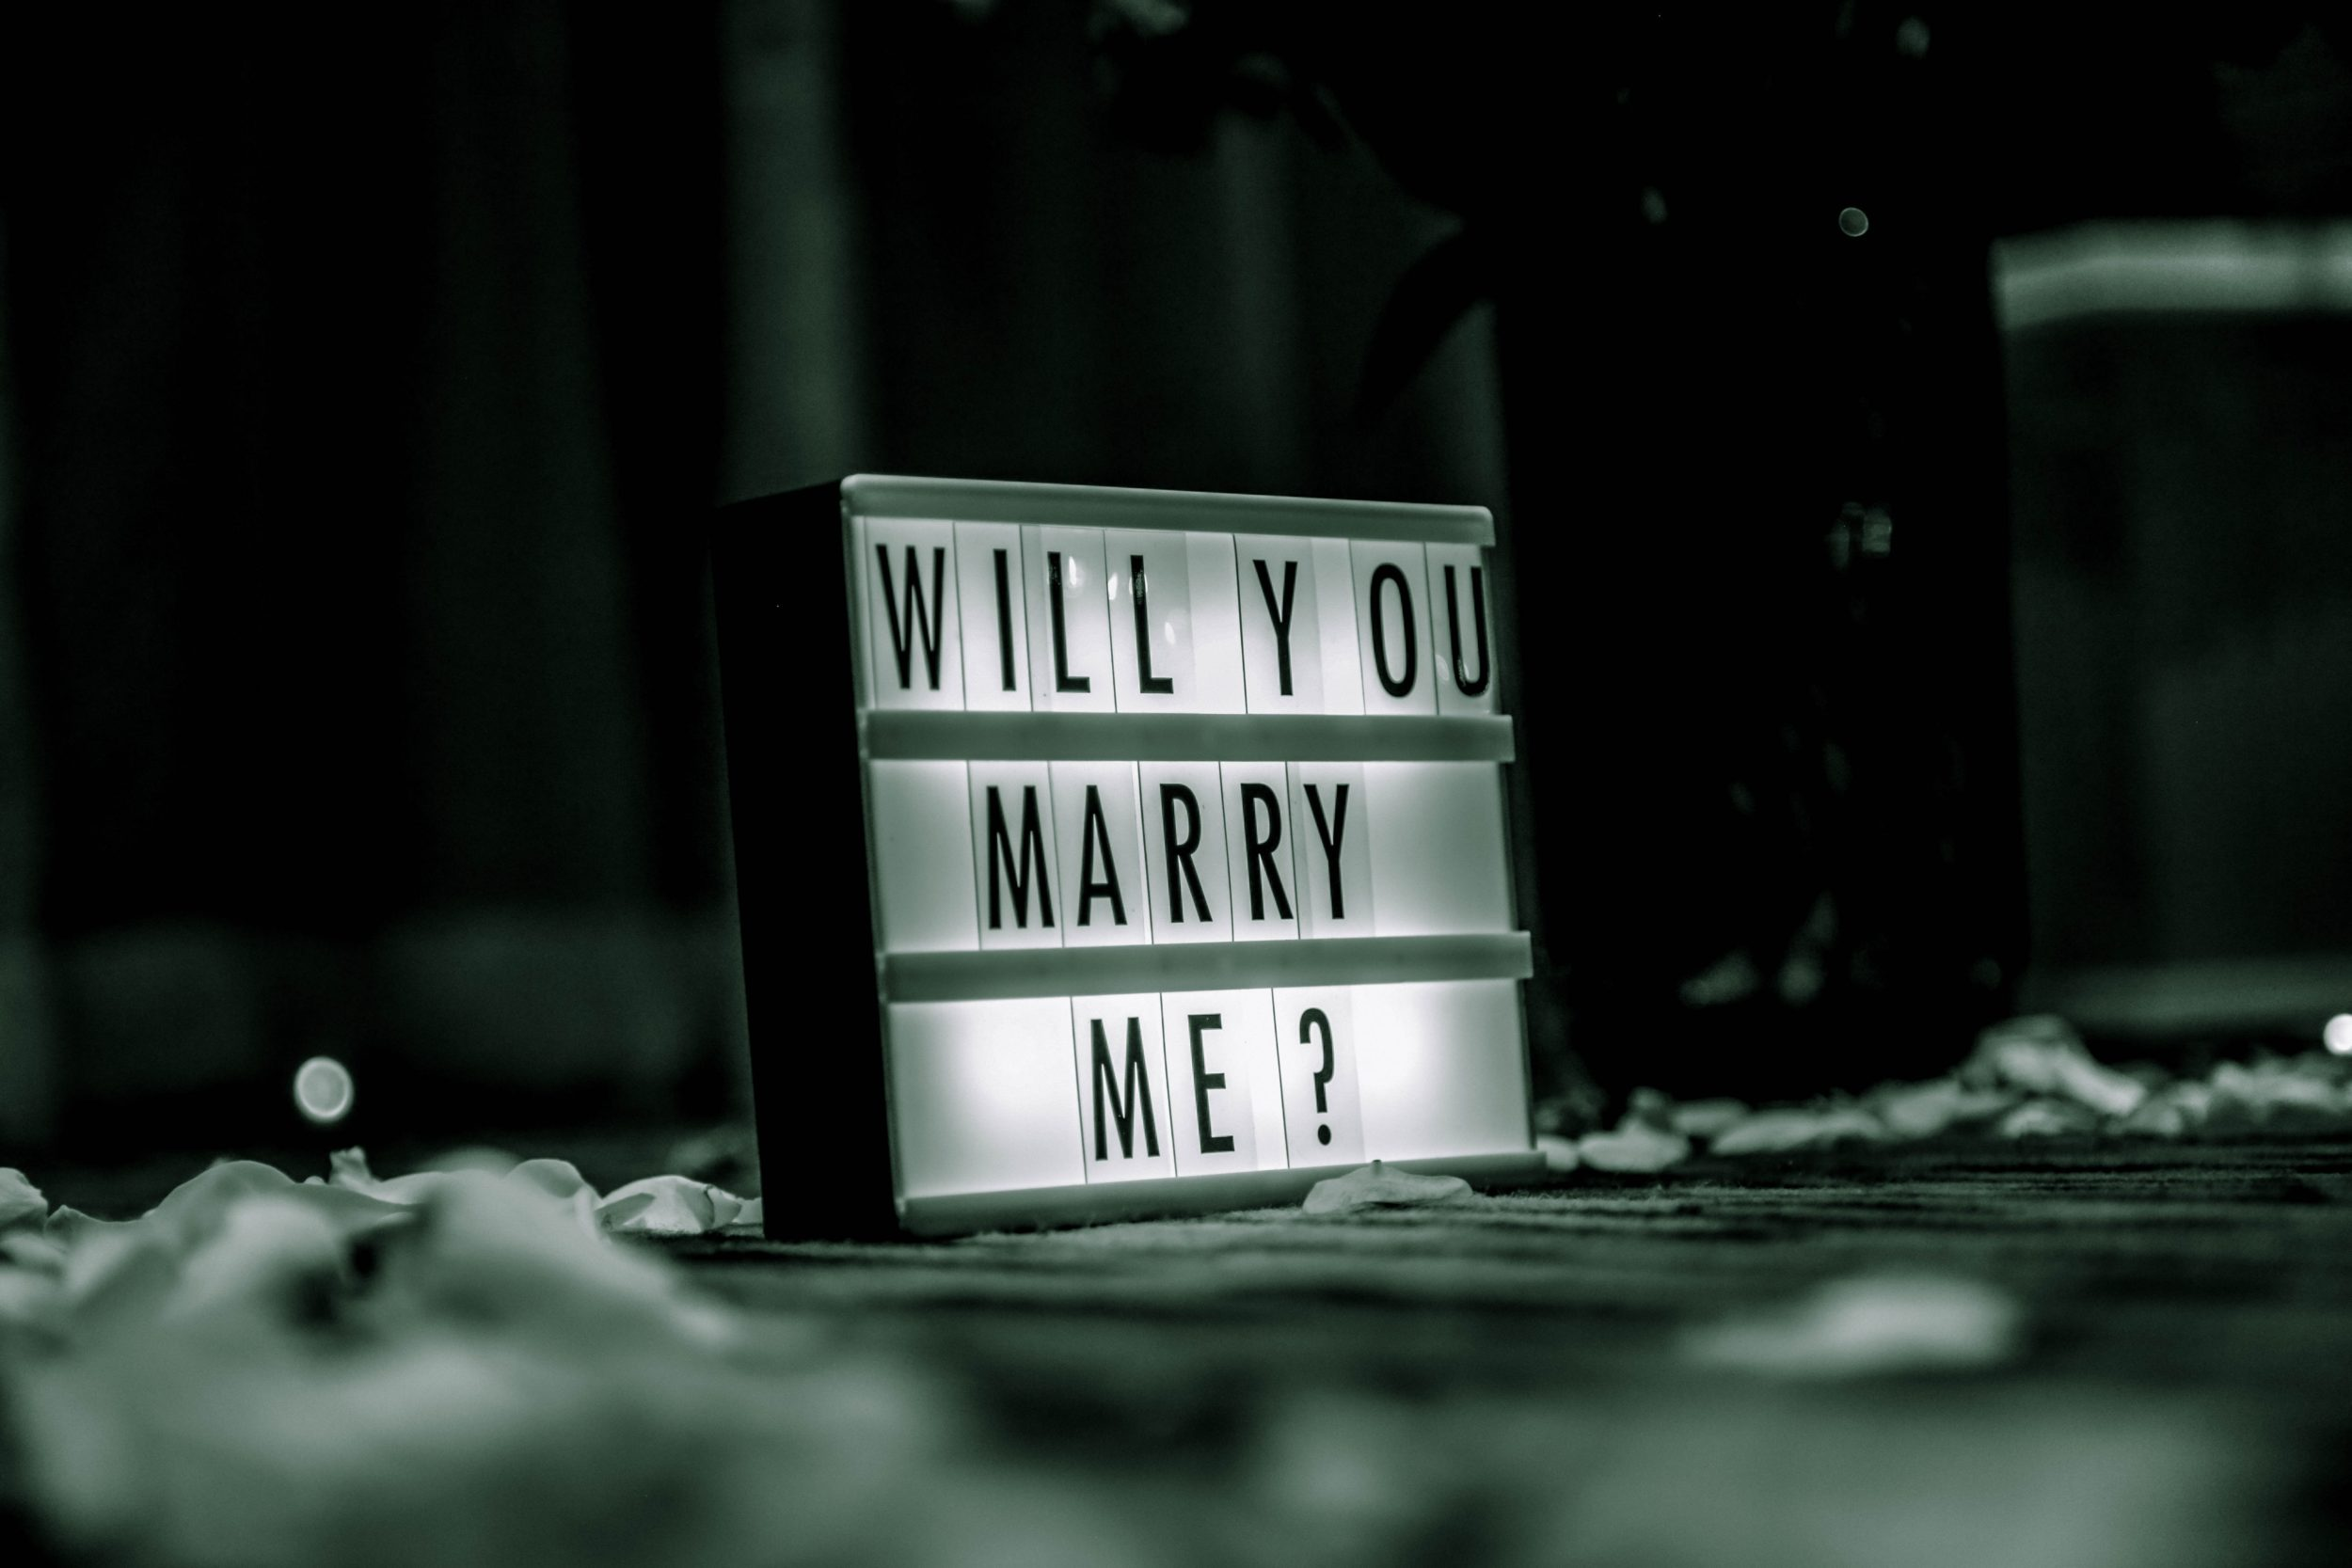 Will_you_marry_me?sign|persuasive?